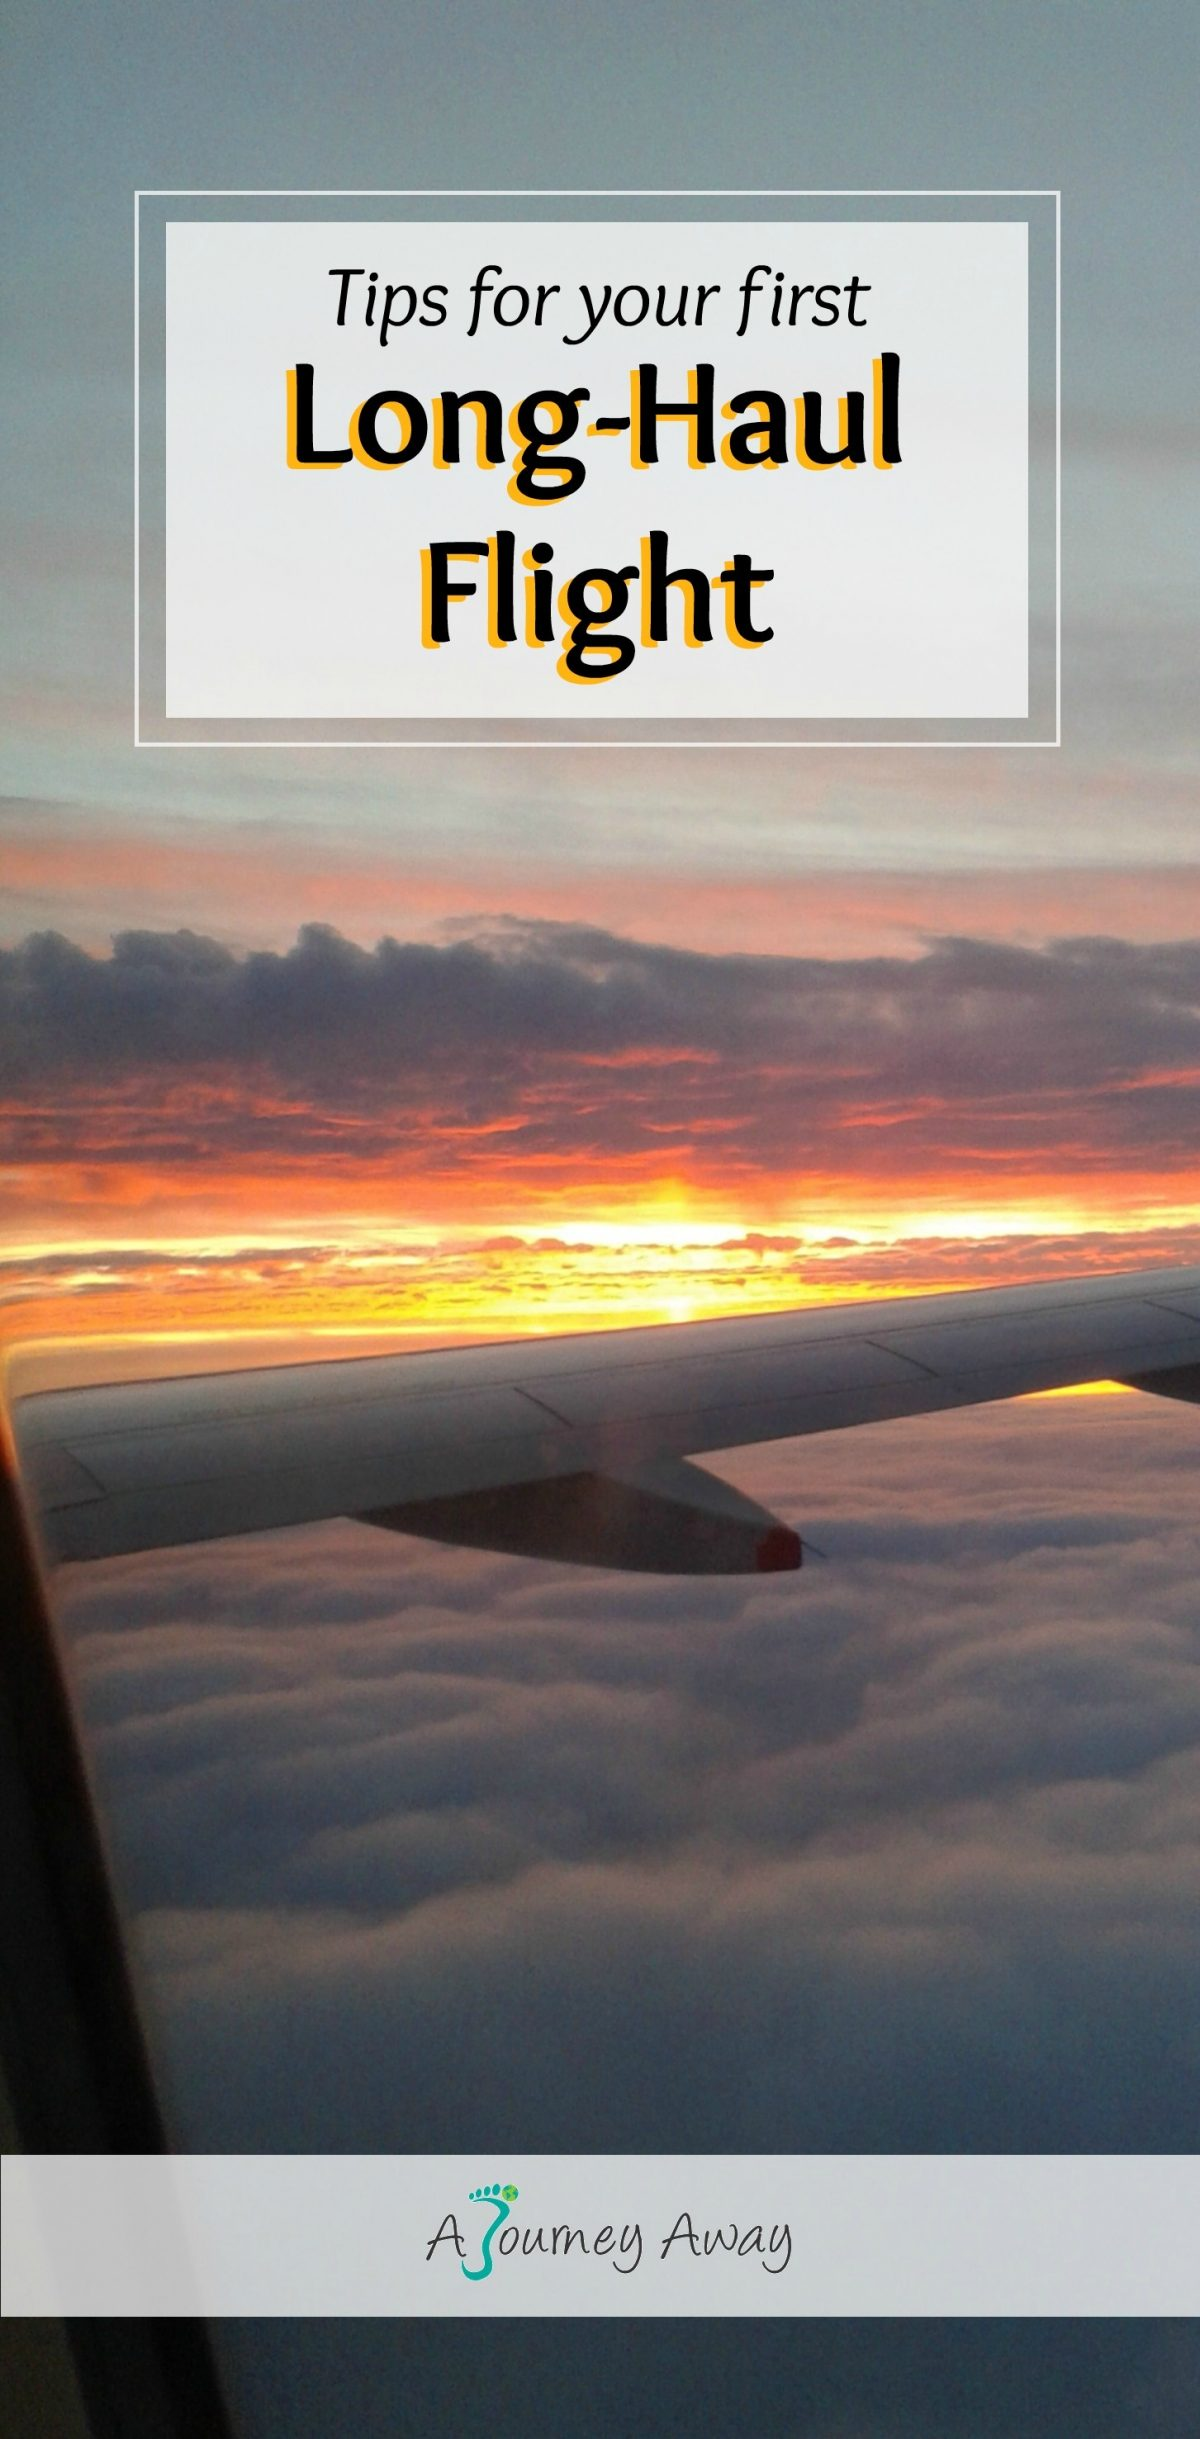 Tips for your first long-haul flight | A Journey Away travel blog